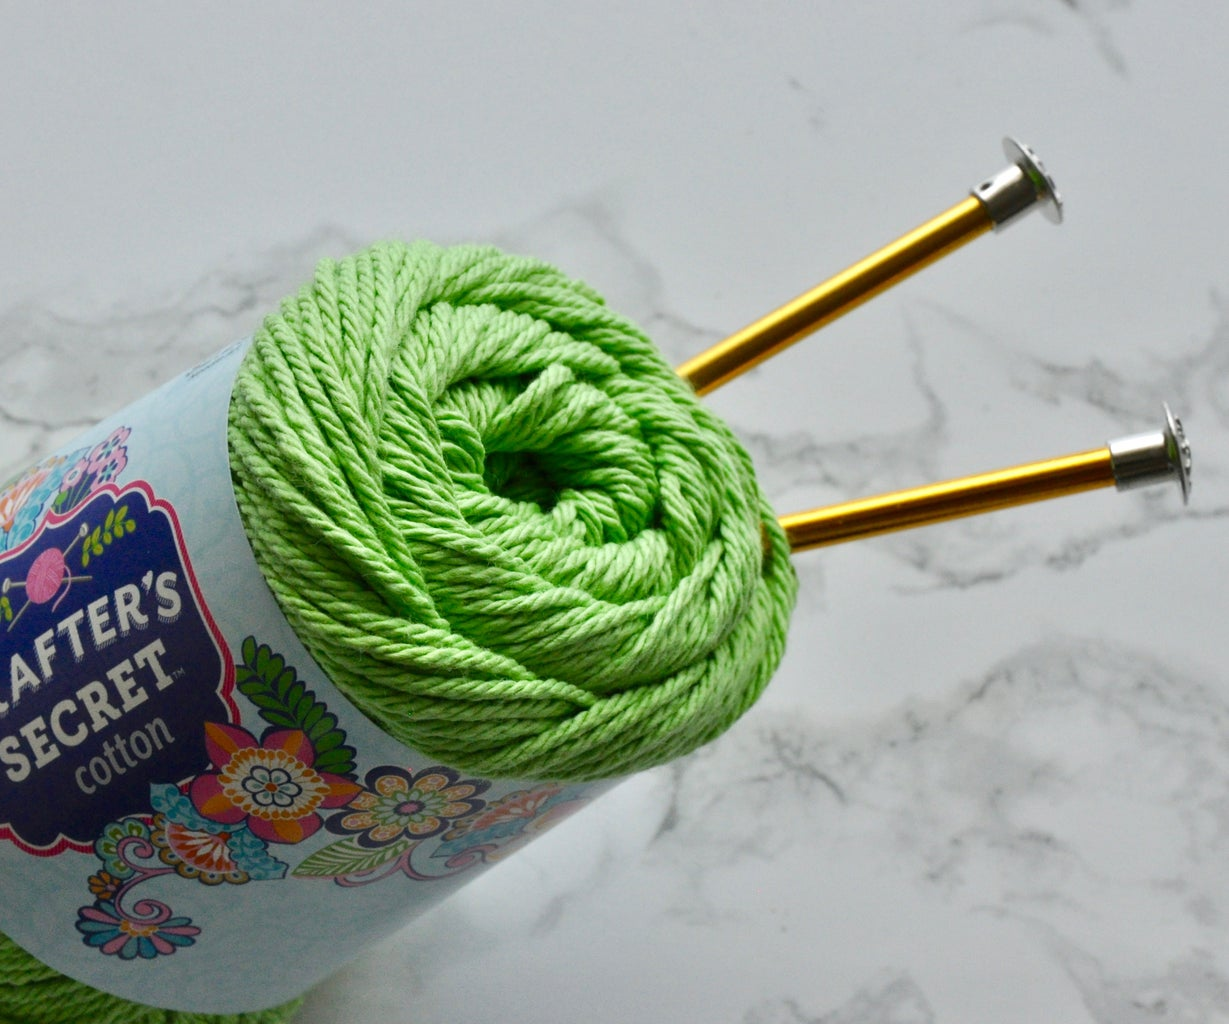 Stitches and Supplies